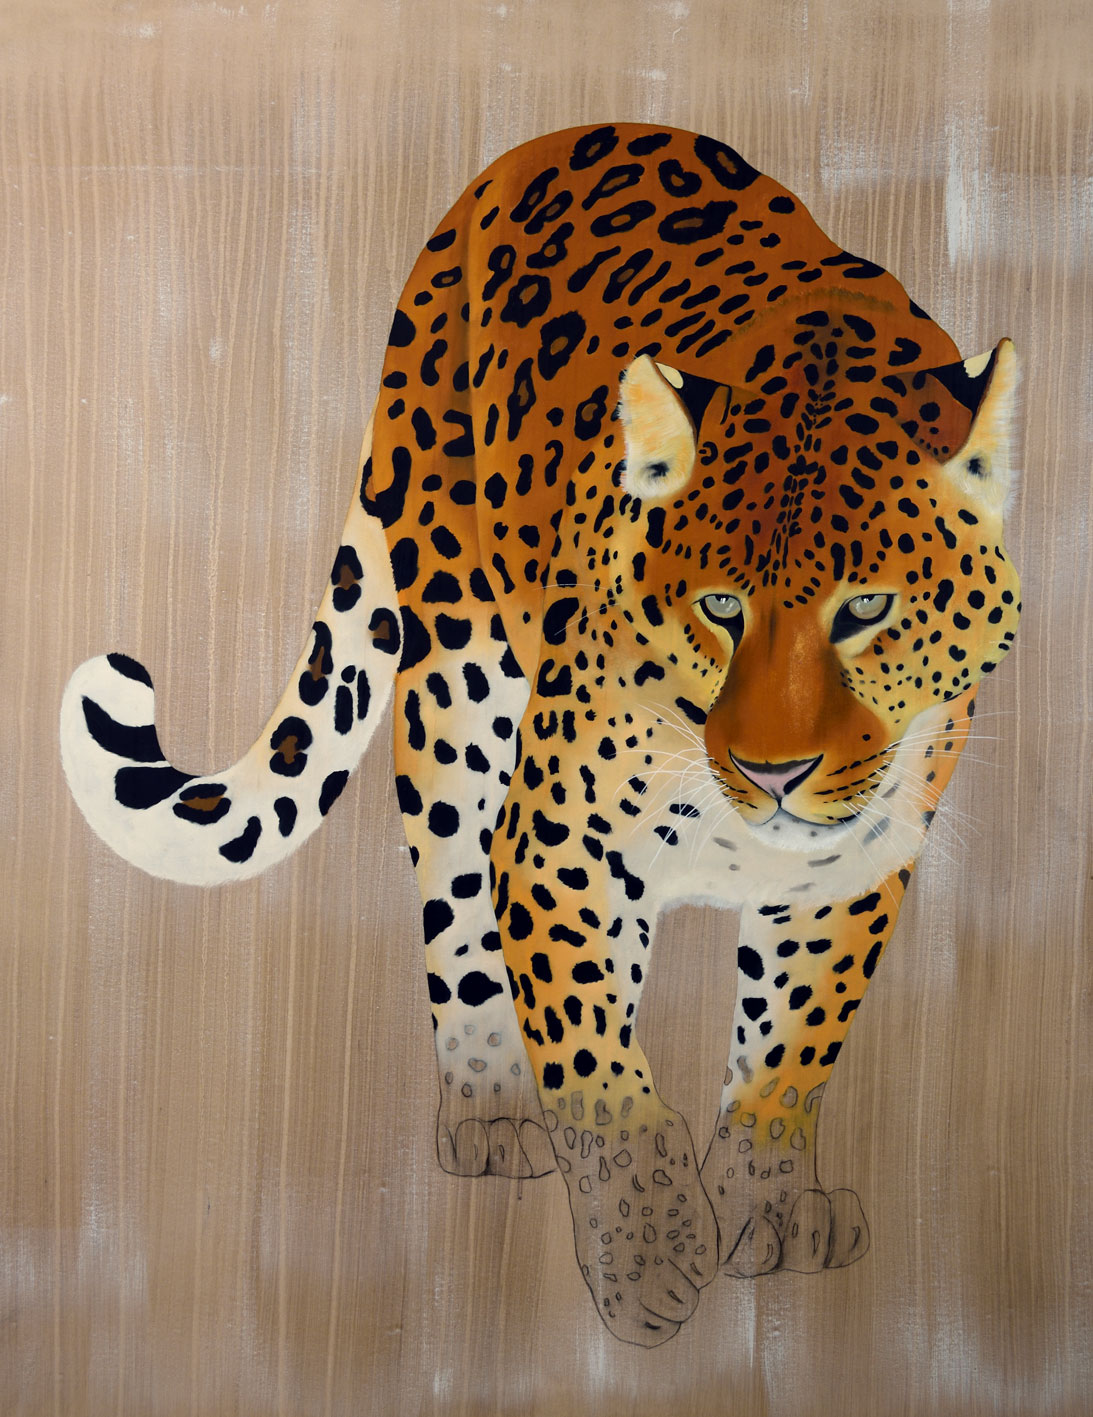 PANTHERA PARDUS ORIENTALIS divers Thierry Bisch painter animals painting art decoration hotel design interior luxury nature biodiversity conservation